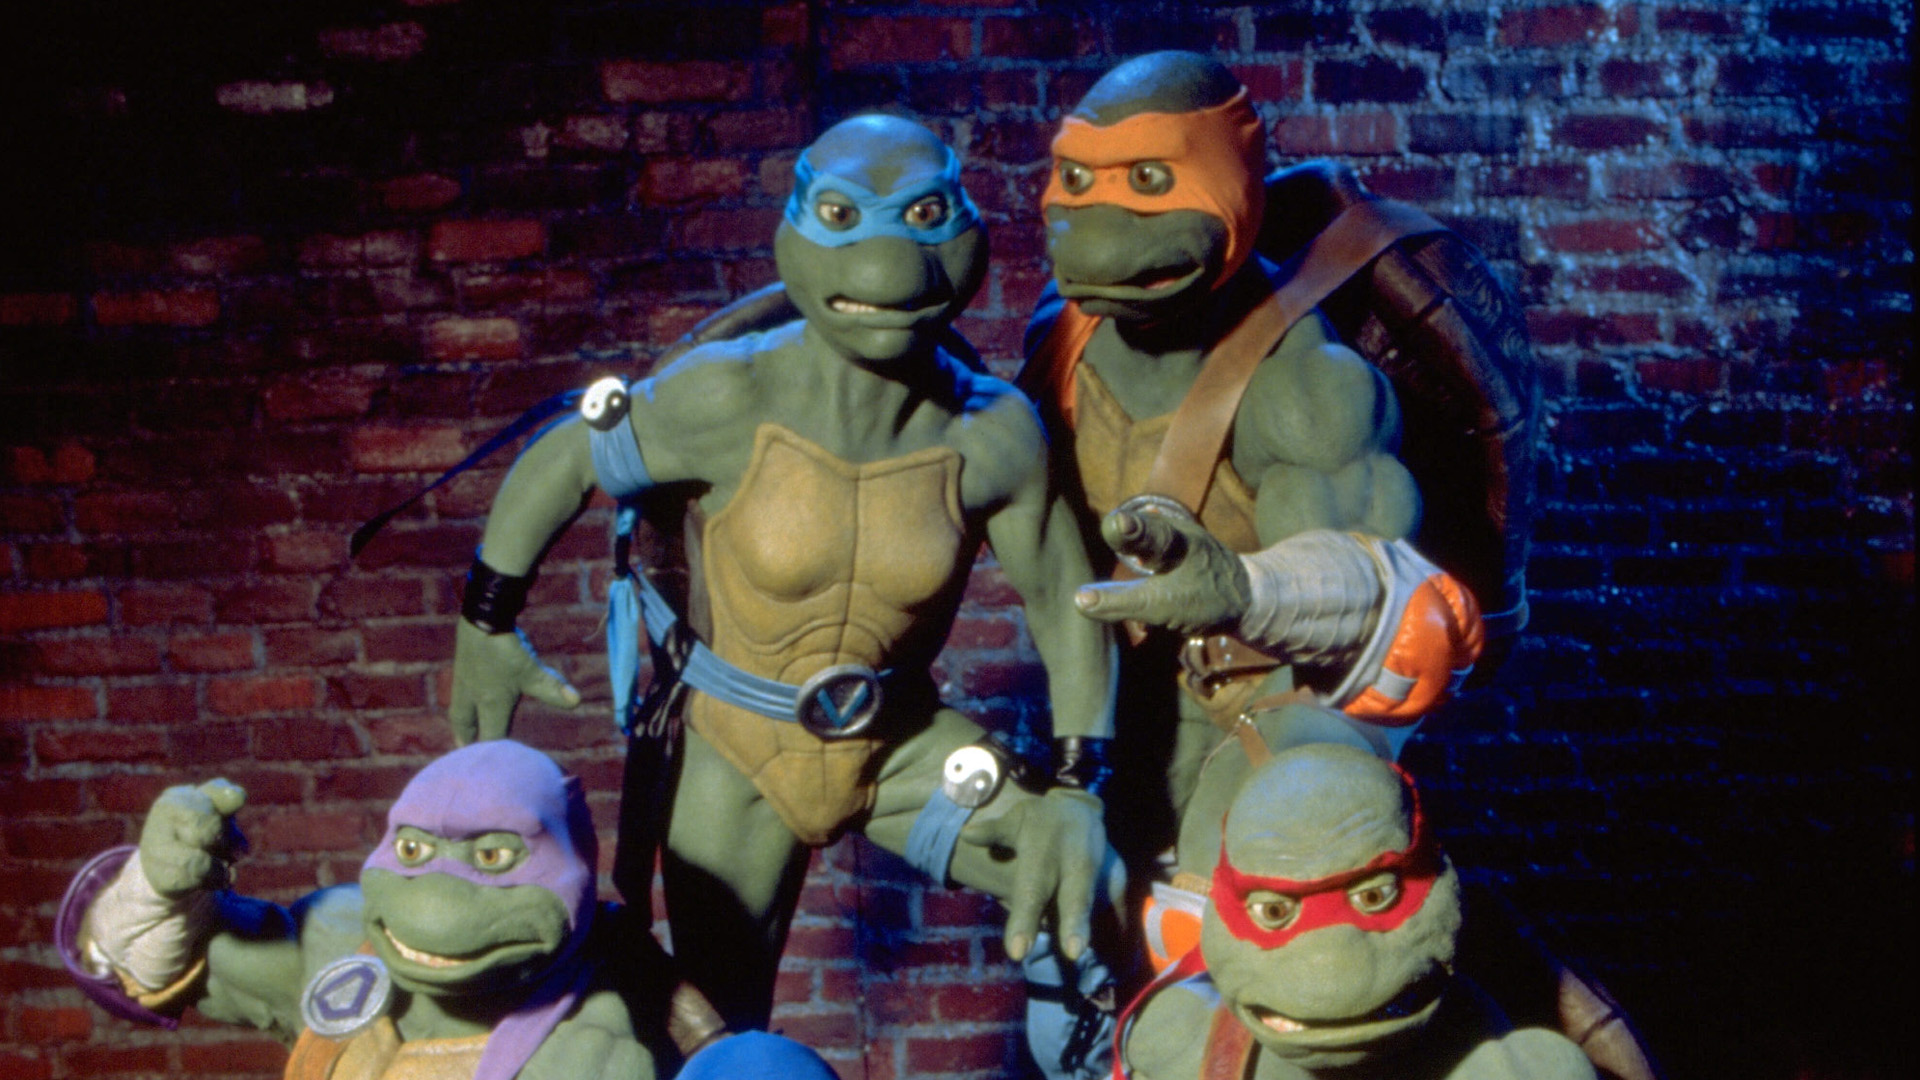 Time for another batch of Ninja Turtles: The Next Mutation, that live-action TMNT TV series made by the people behind Power Rangers.  There's a good chance you've heard of it, but a negligible chance you've actually seen it.